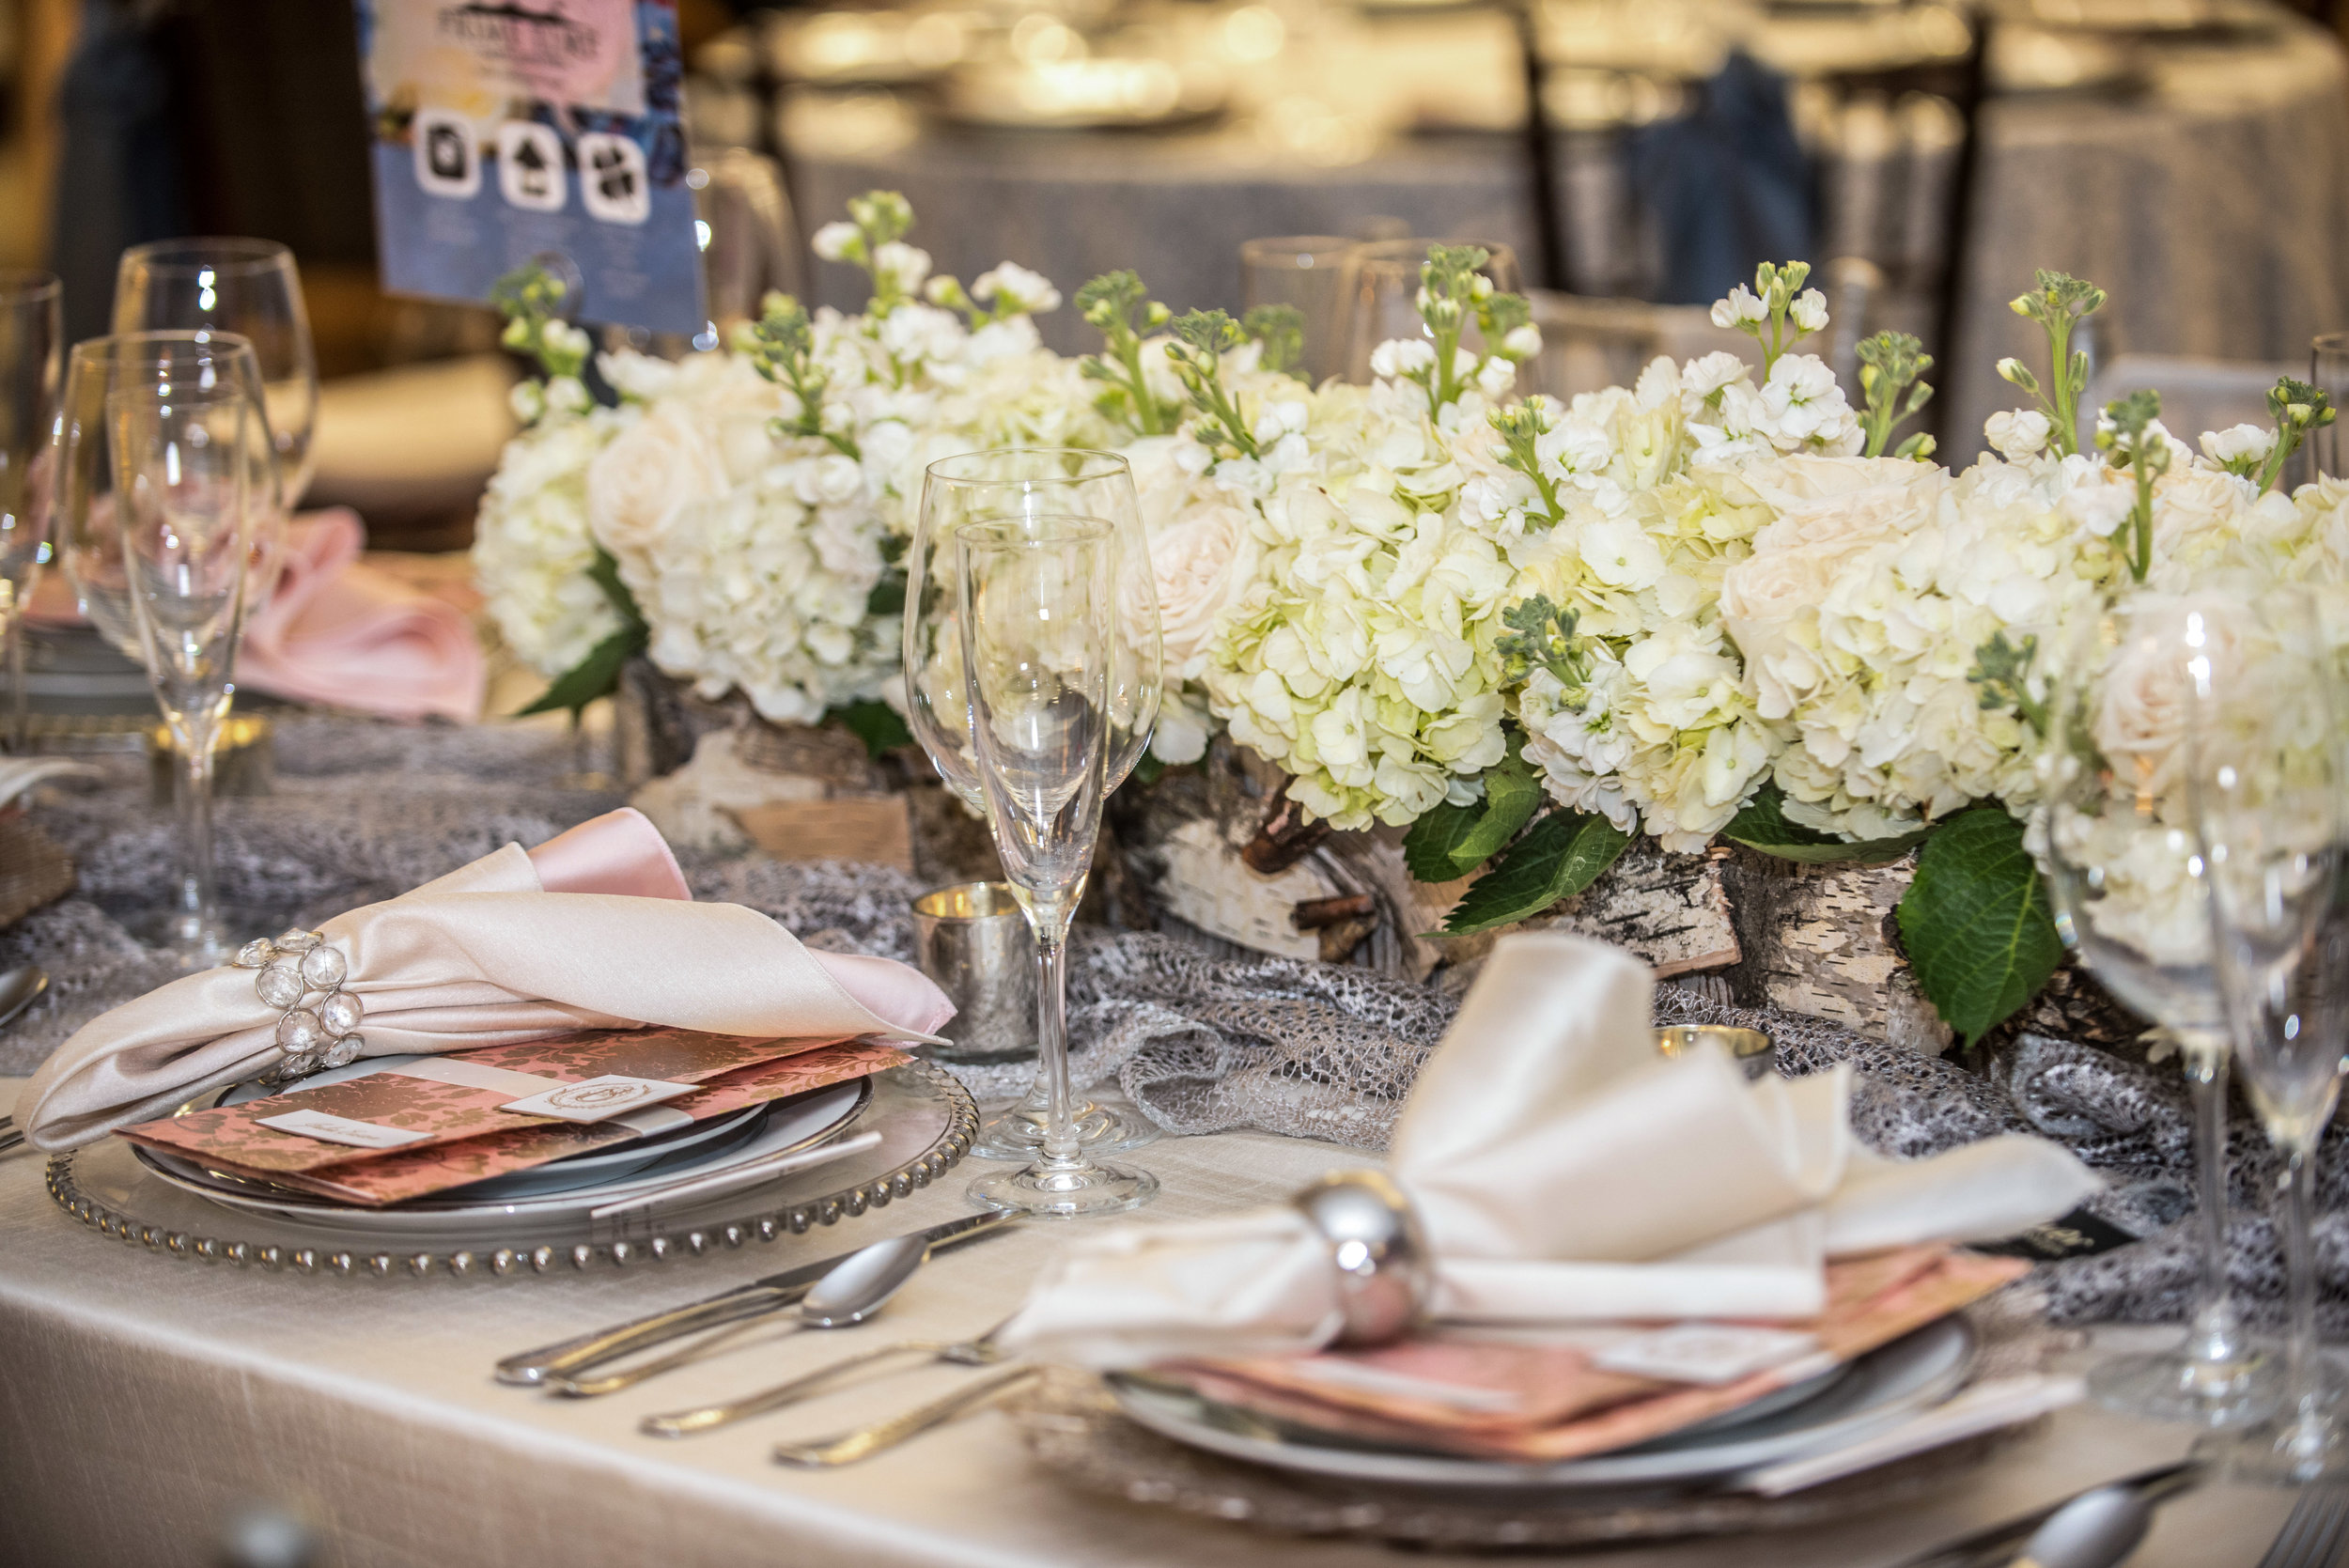 event-design-flowers-place-setting-theme-wedding.jpg